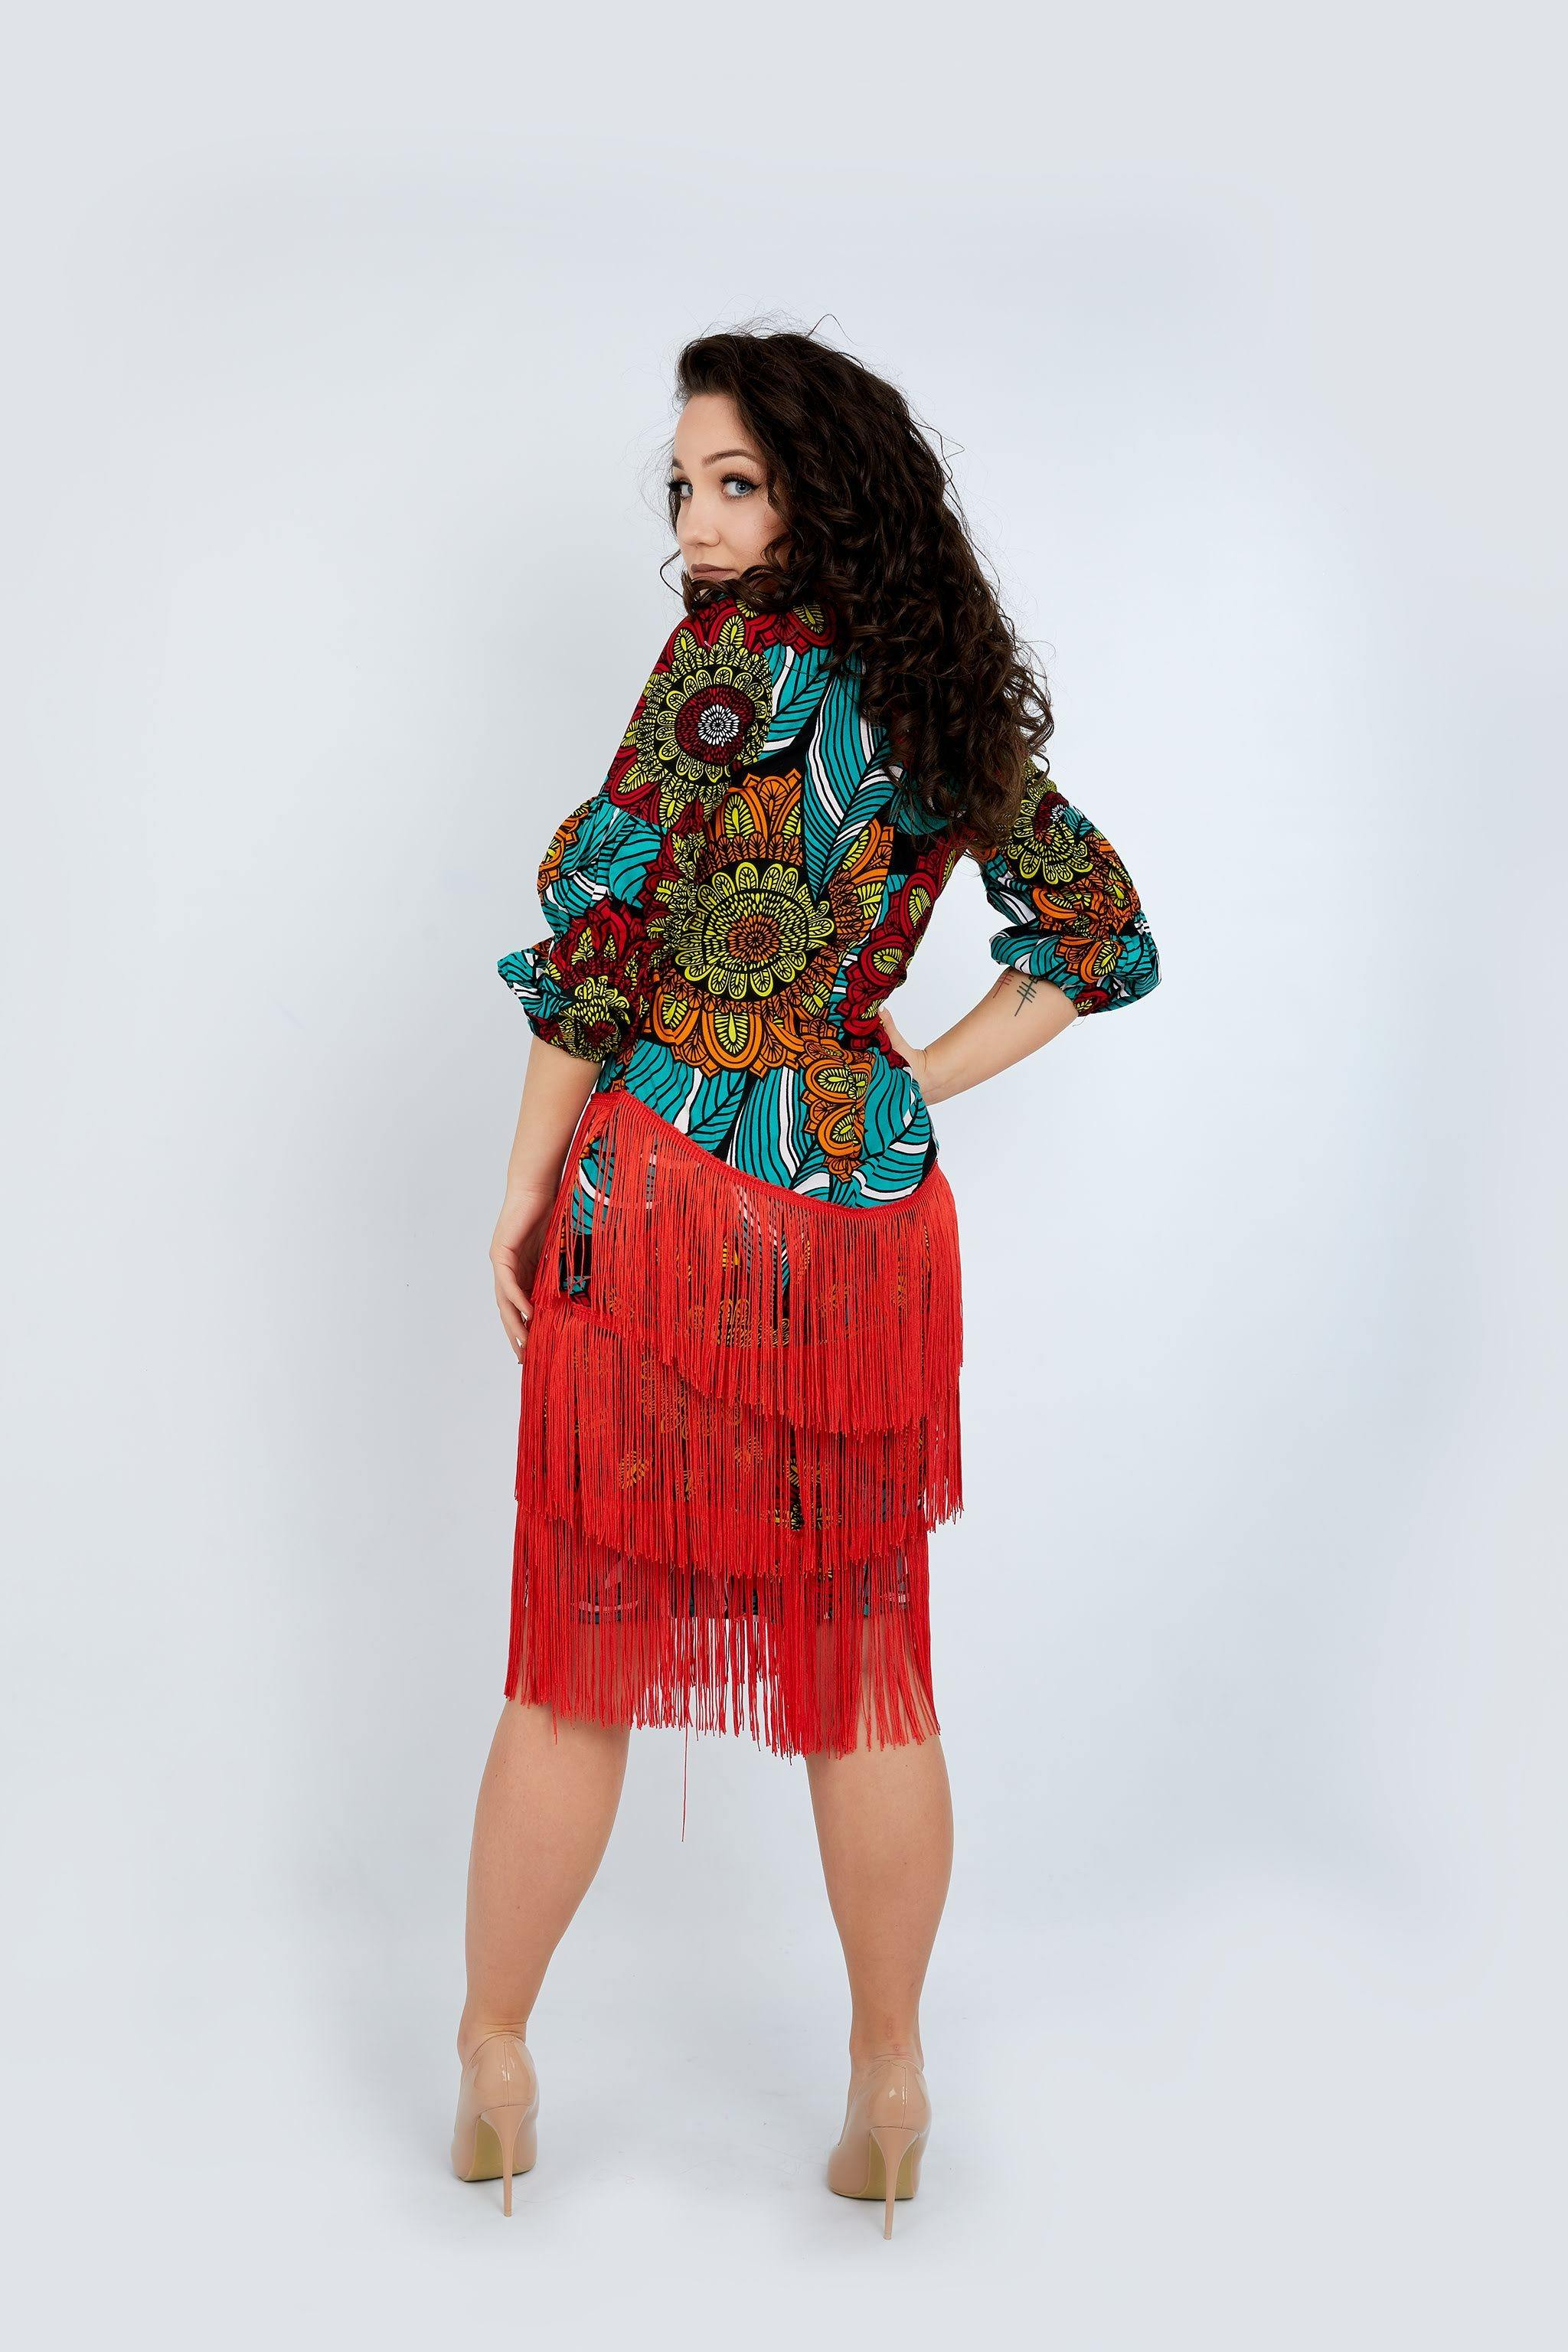 WAA- Ankara Shimmy Dress - waafashion